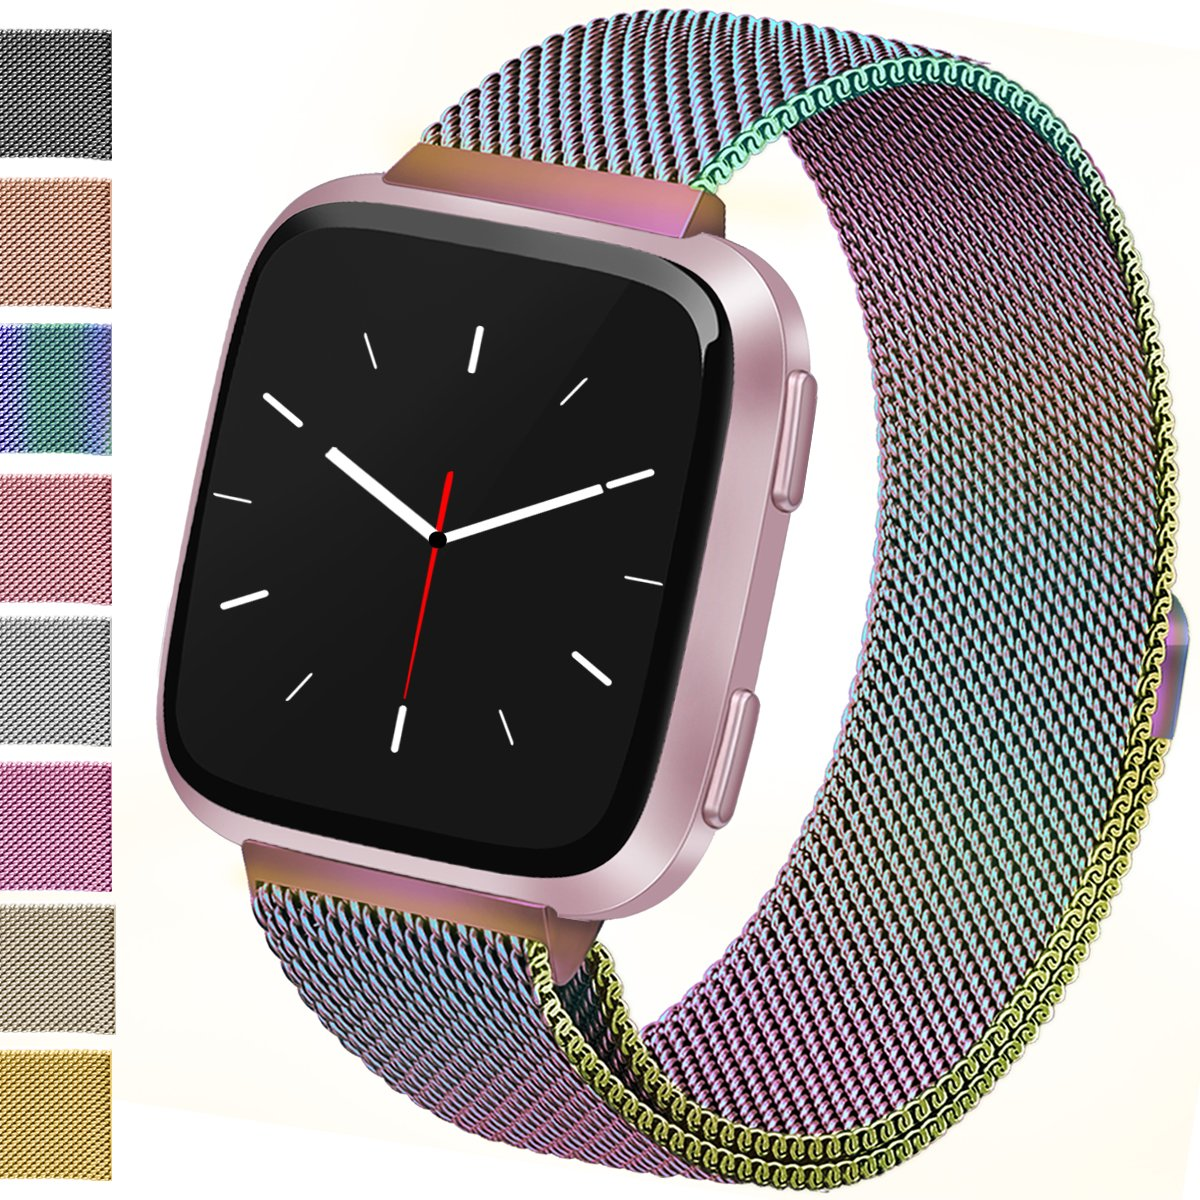 Vancle For Fitbit Versa Bands, Stainless Steel Milanese Mesh Loop Metal Replacement Wristbands with Magnet Lock for Fitbit Versa (Rainbow, Small)